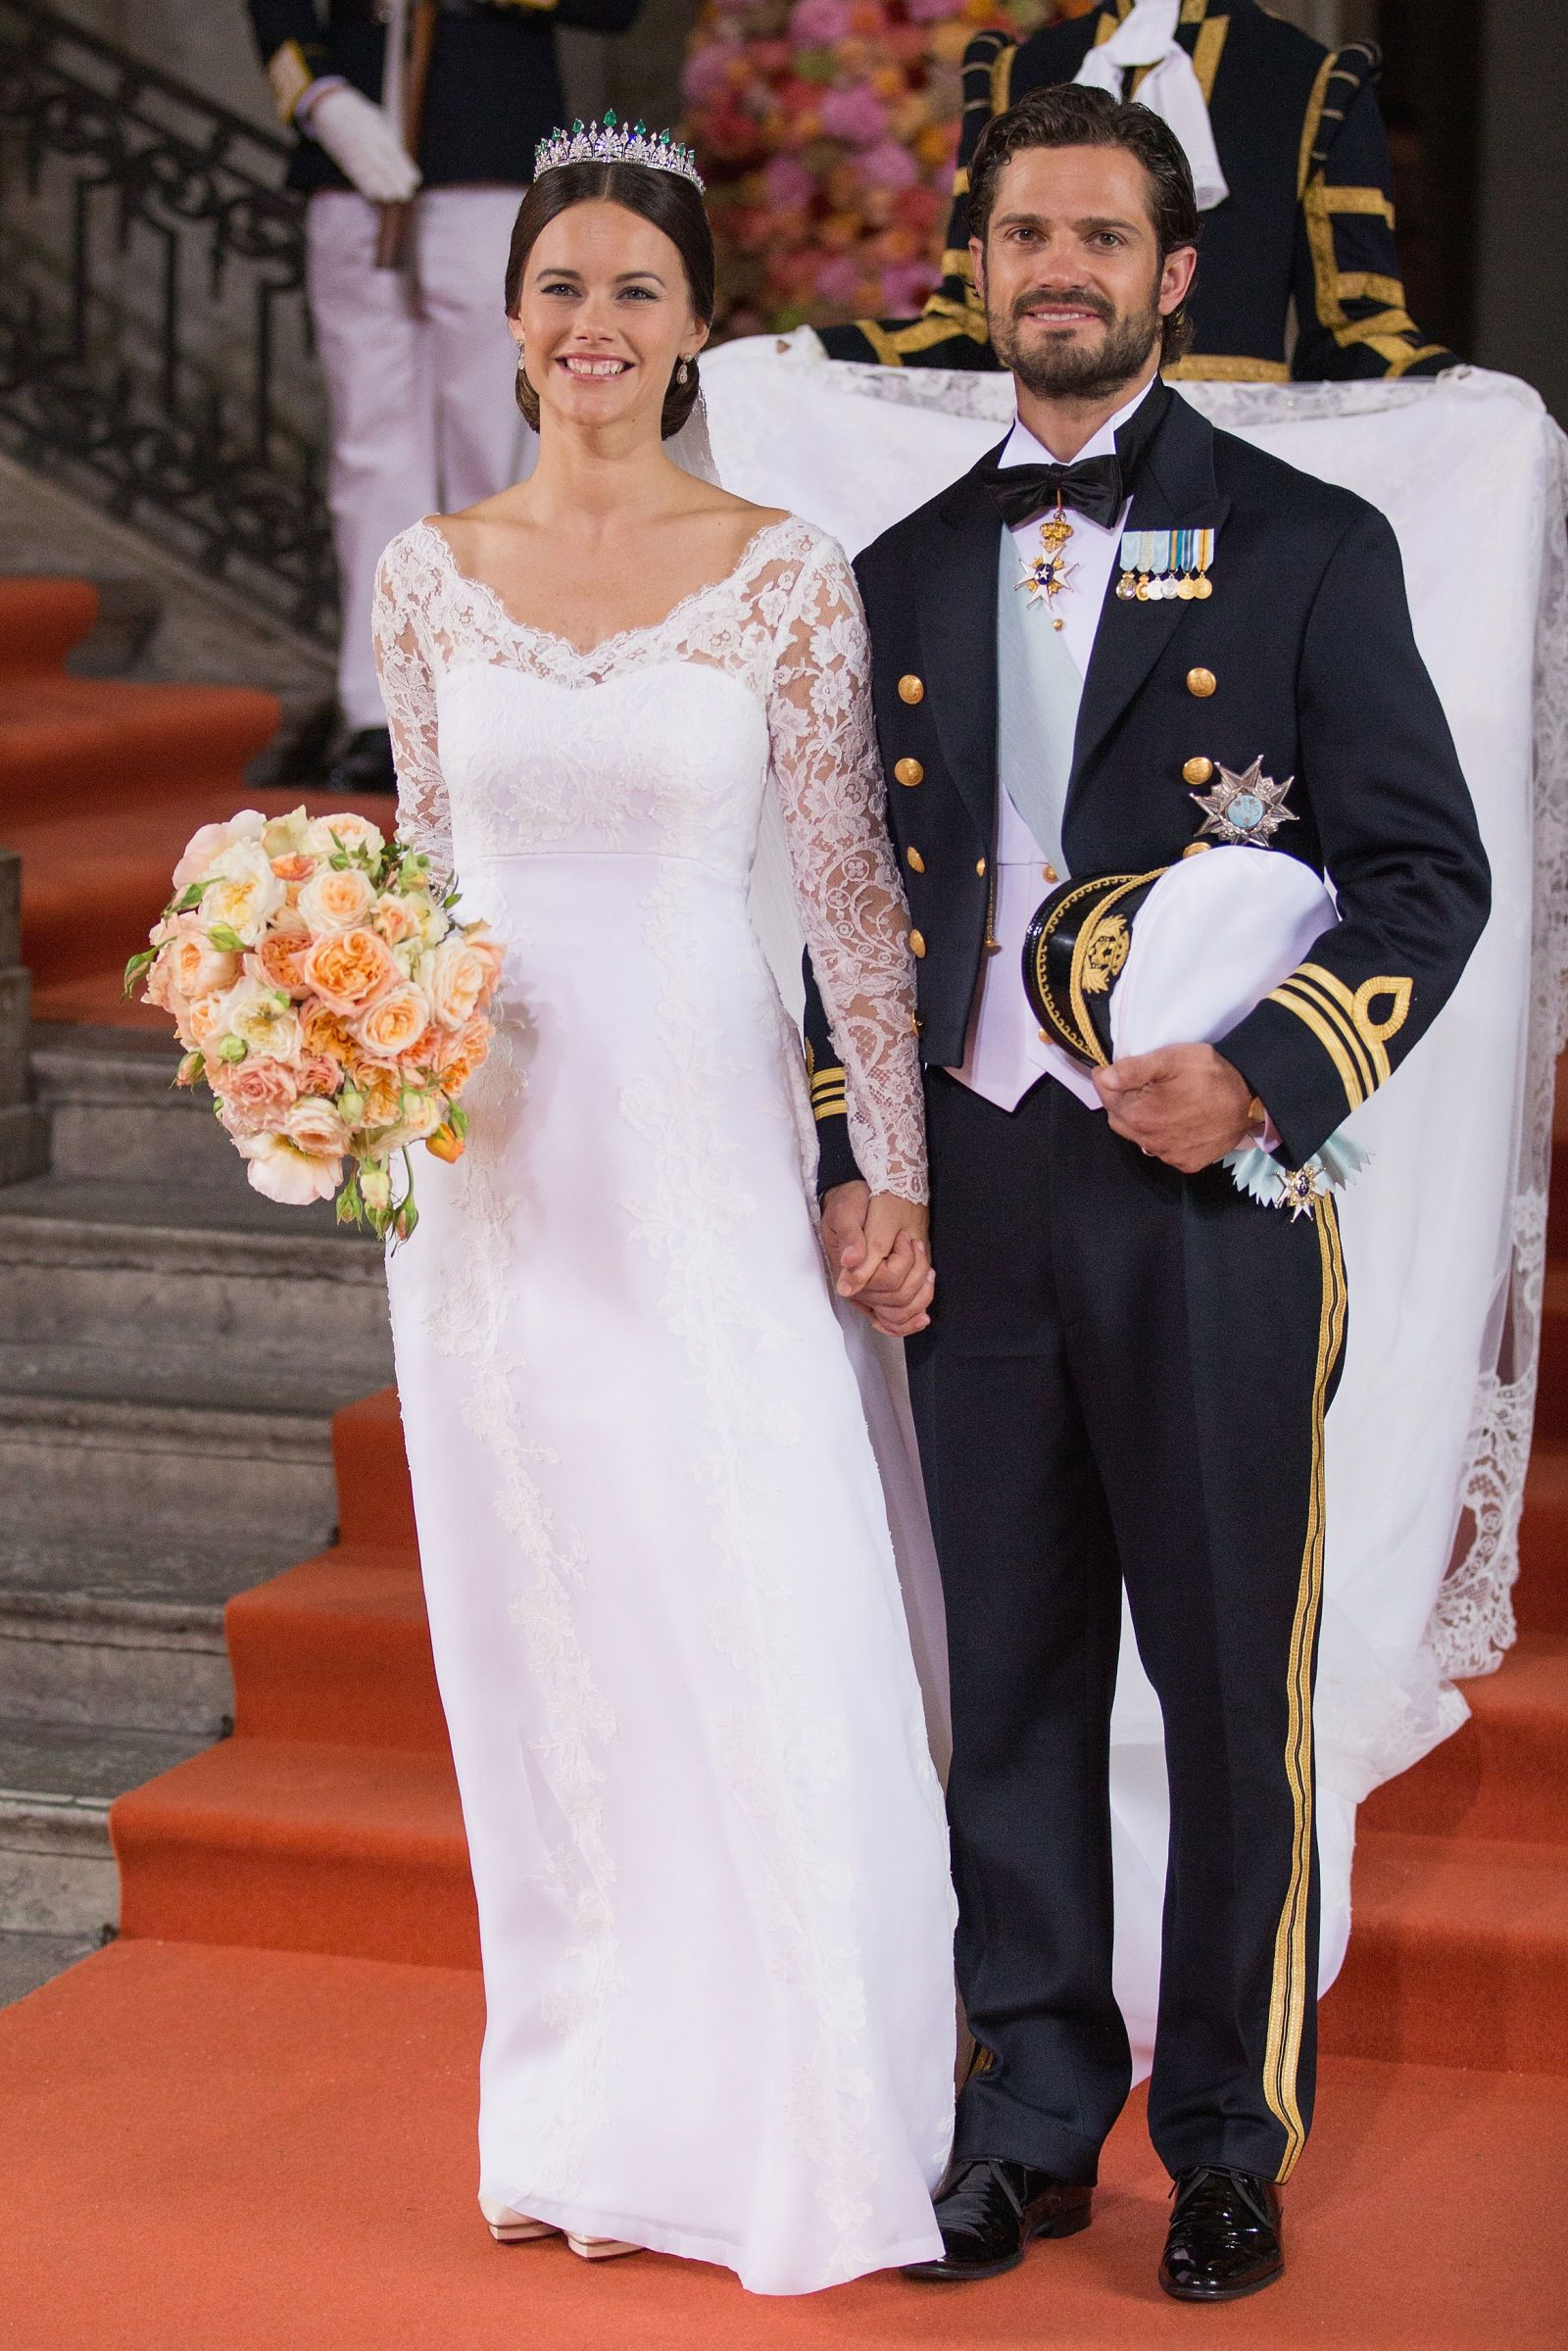 The 13 celeb wedding dresses that stole 2015 prince carl philip the 13 celeb wedding dresses that stole 2015 ombrellifo Images